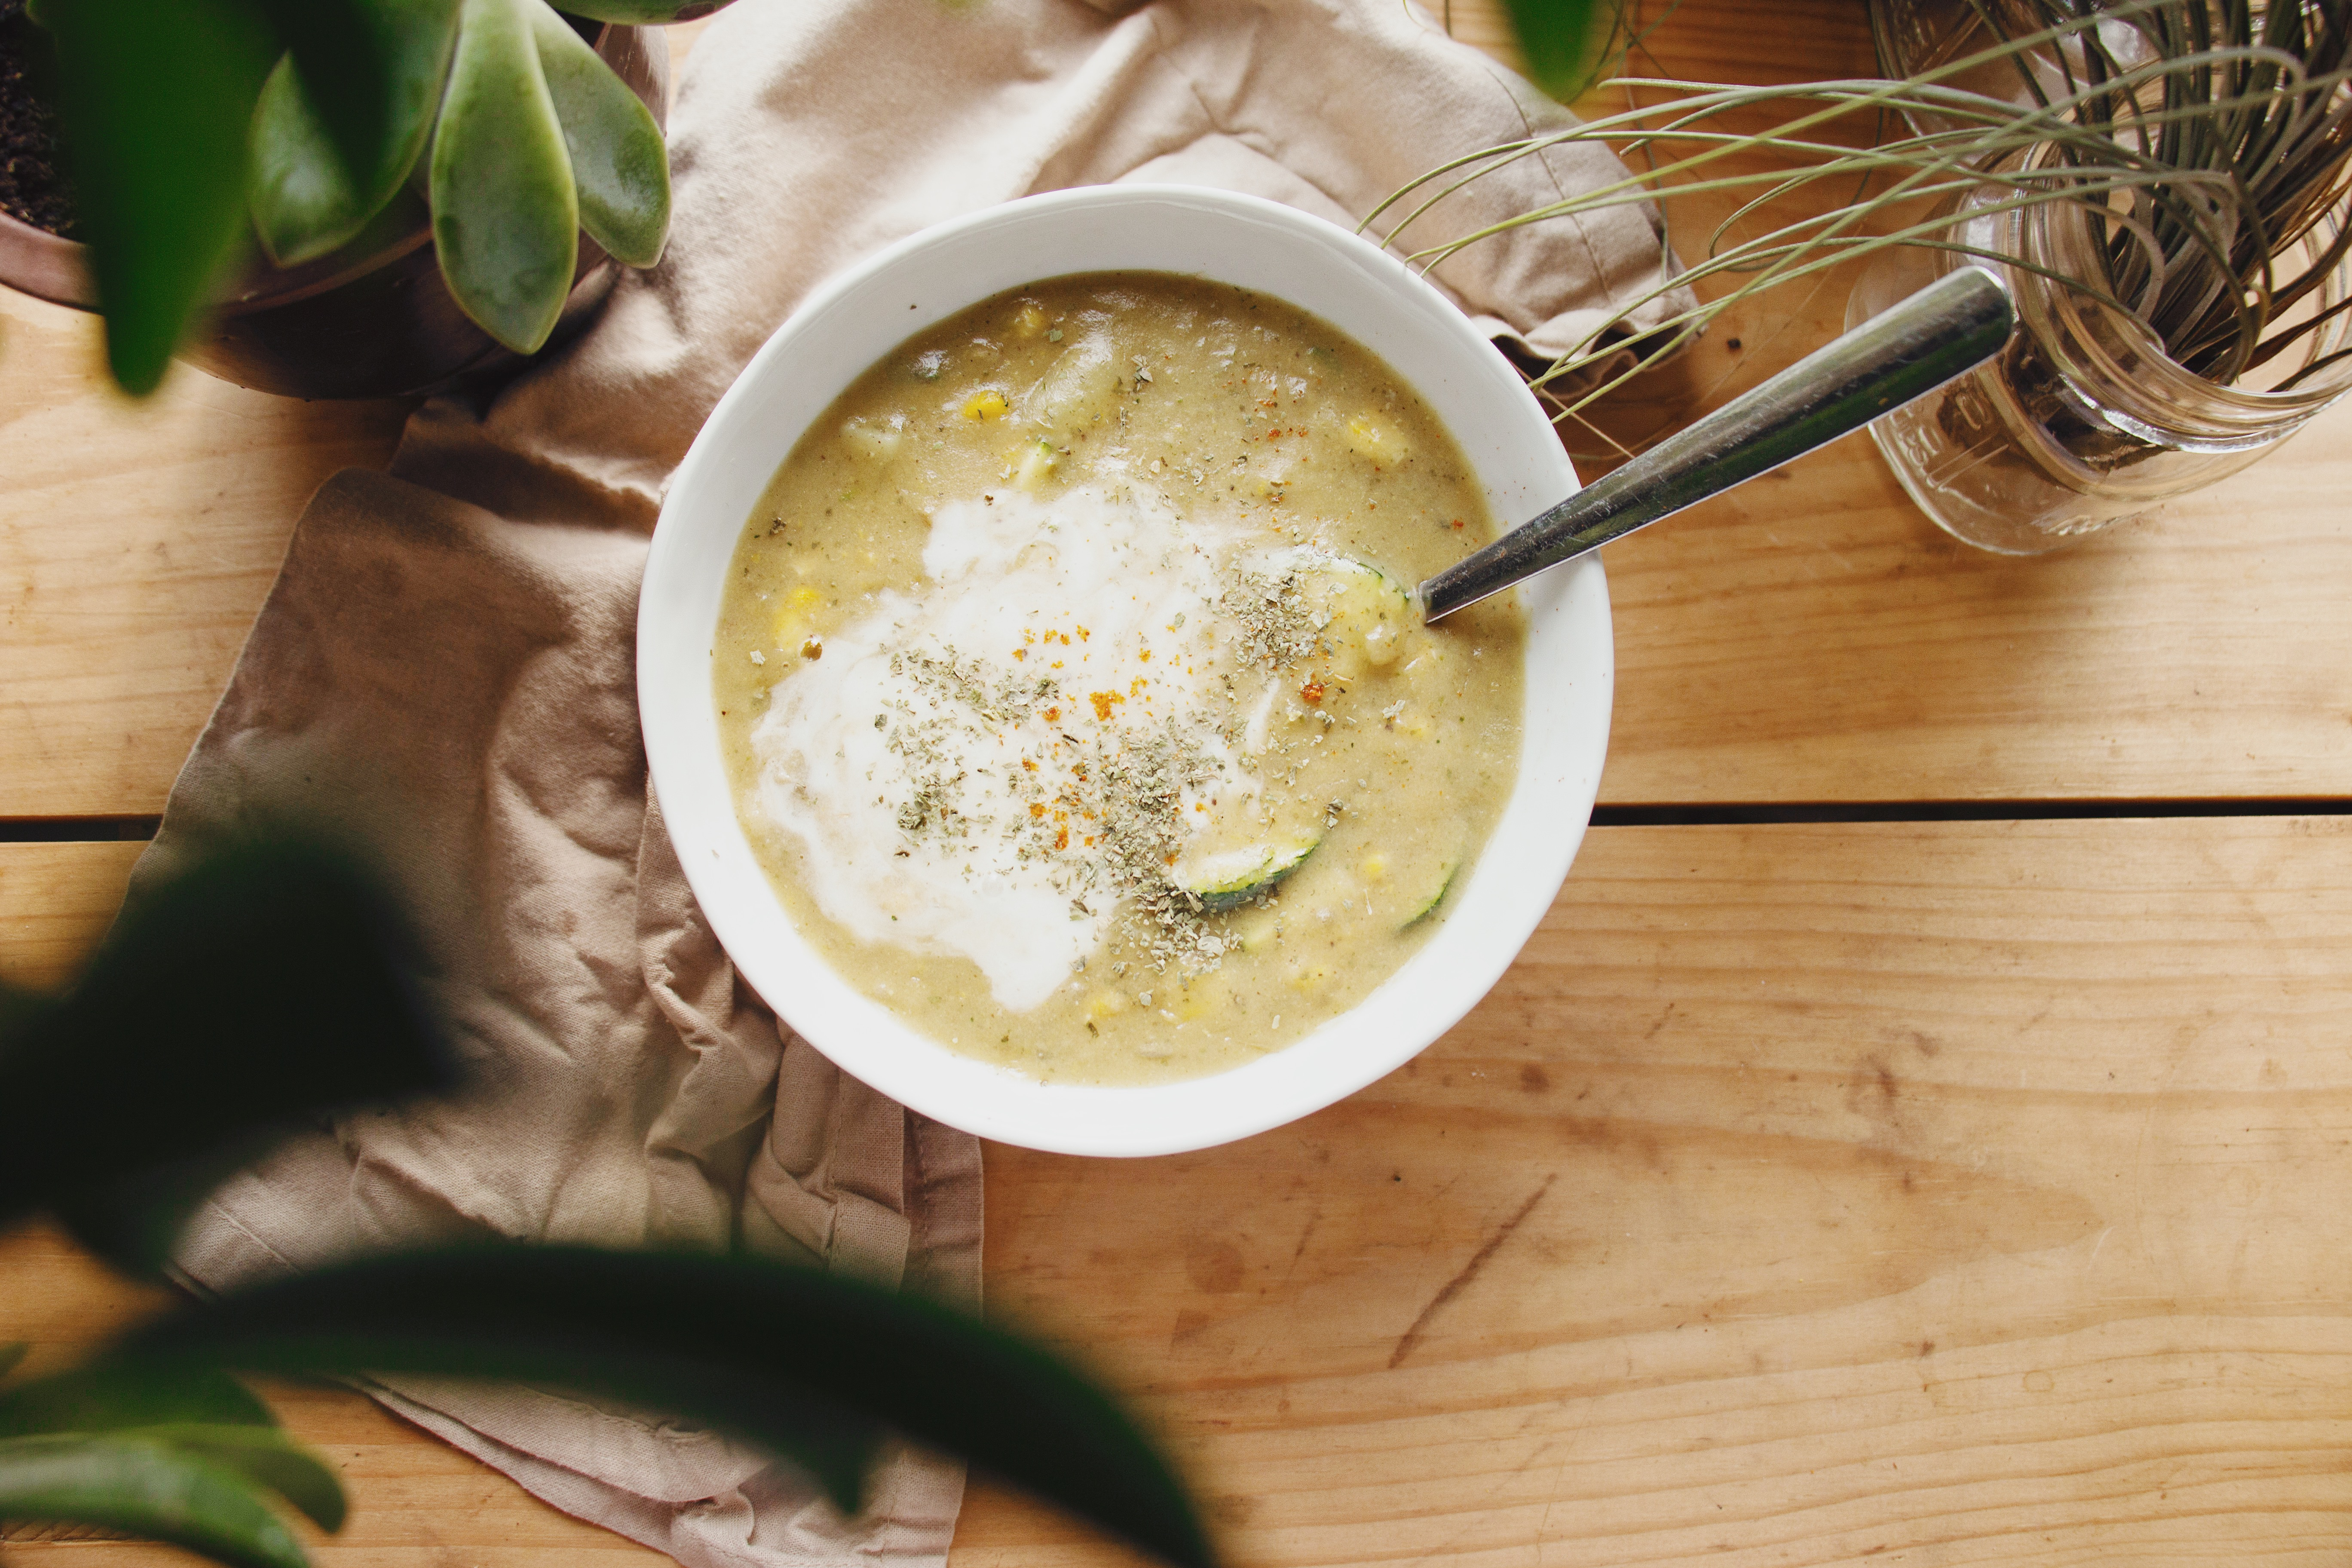 Summer corn chowder in white bowl with spoon